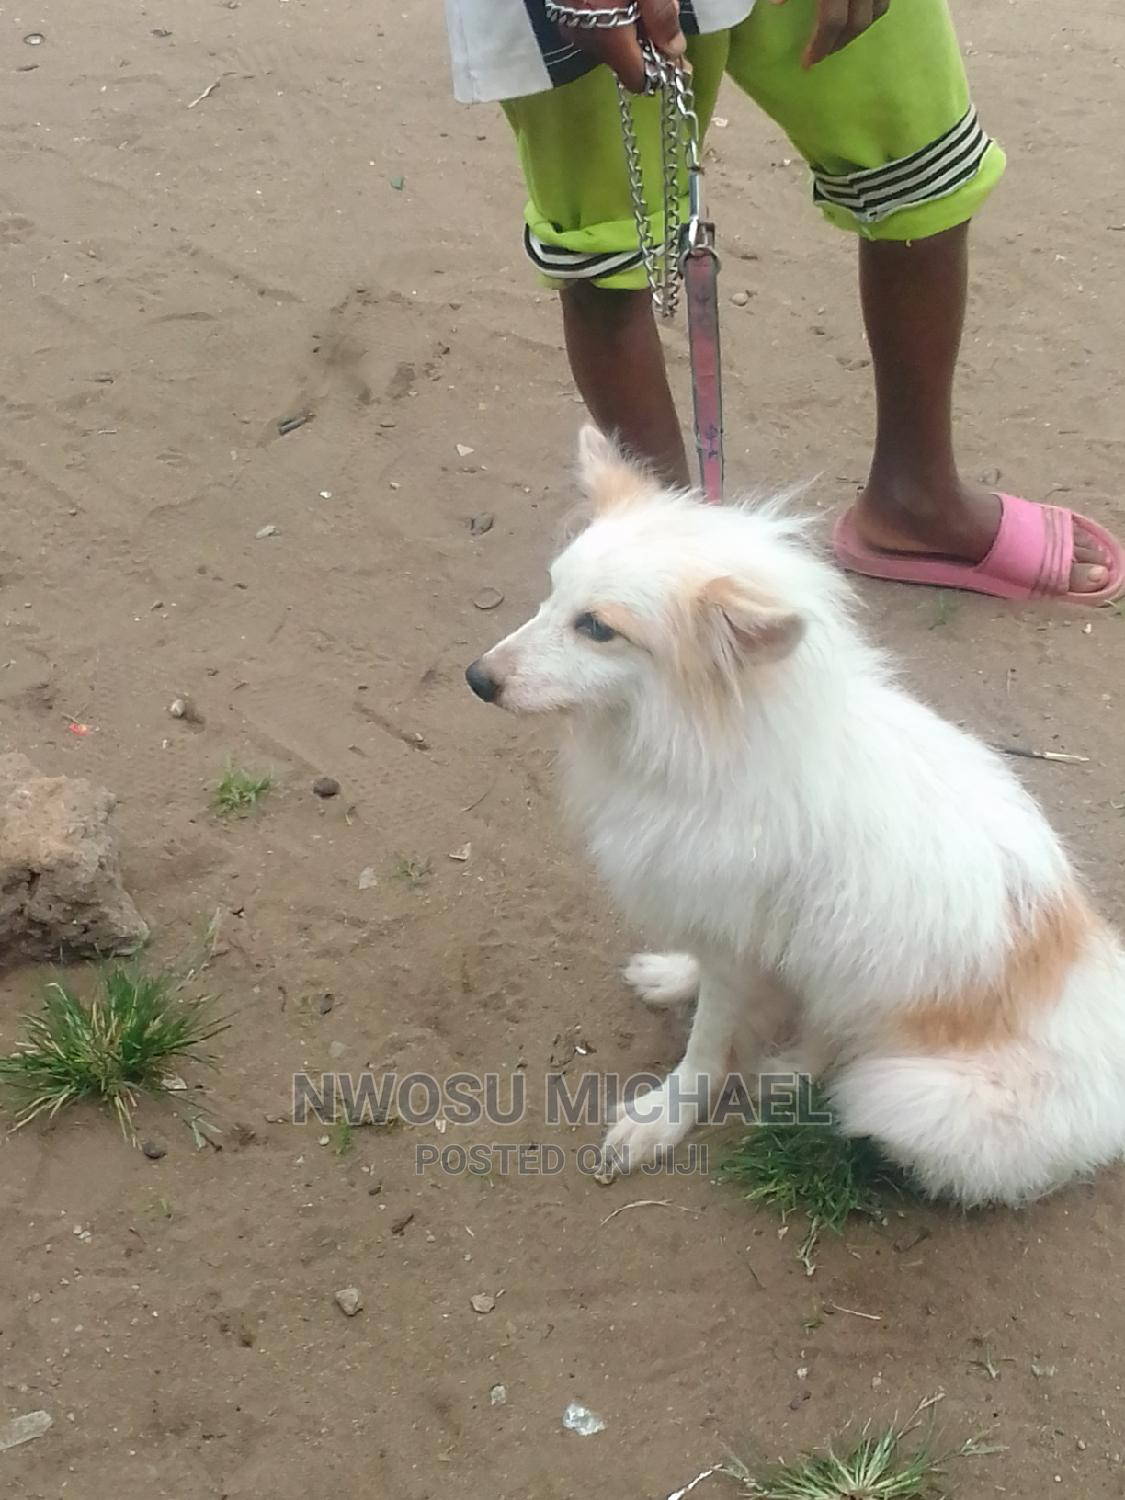 Archive: 1+ Year Male Mixed Breed American Eskimo